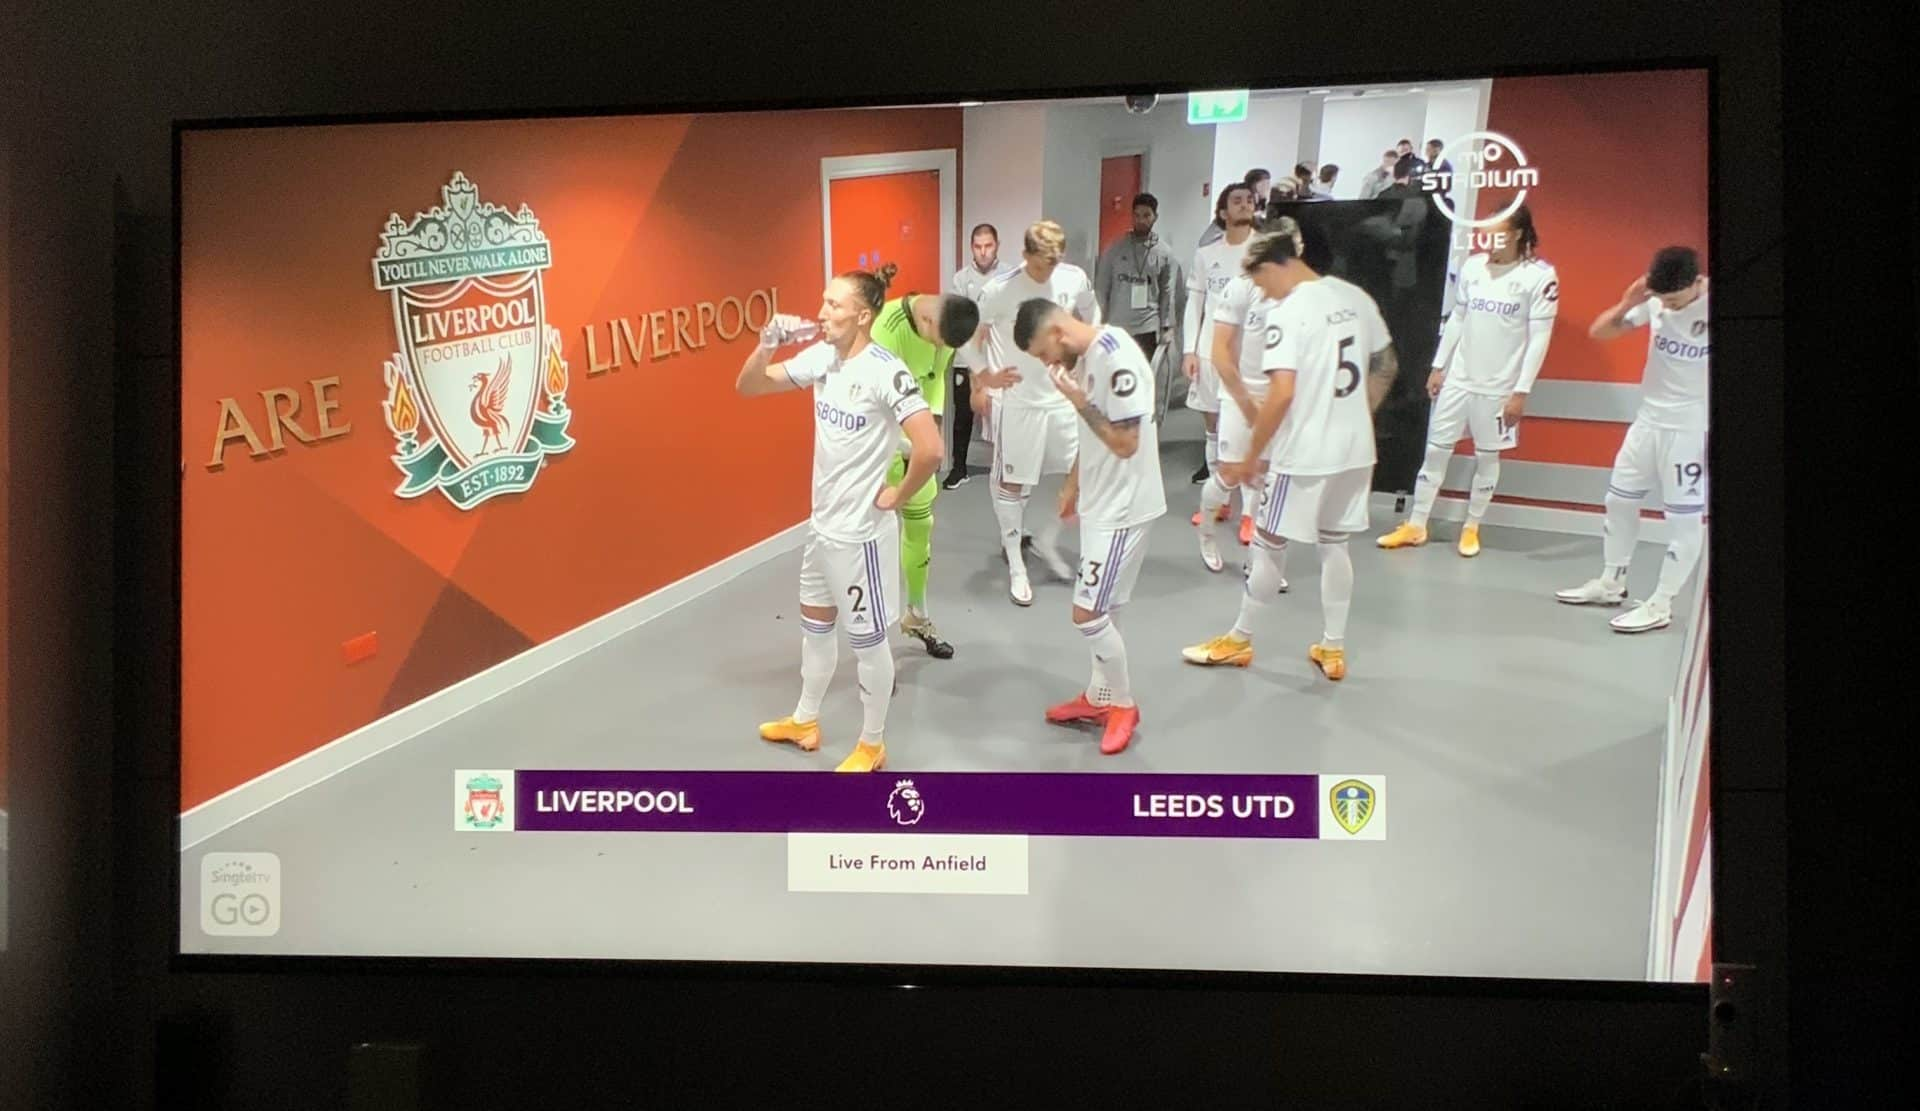 Liverpool vs Leeds 13th Sep 2020